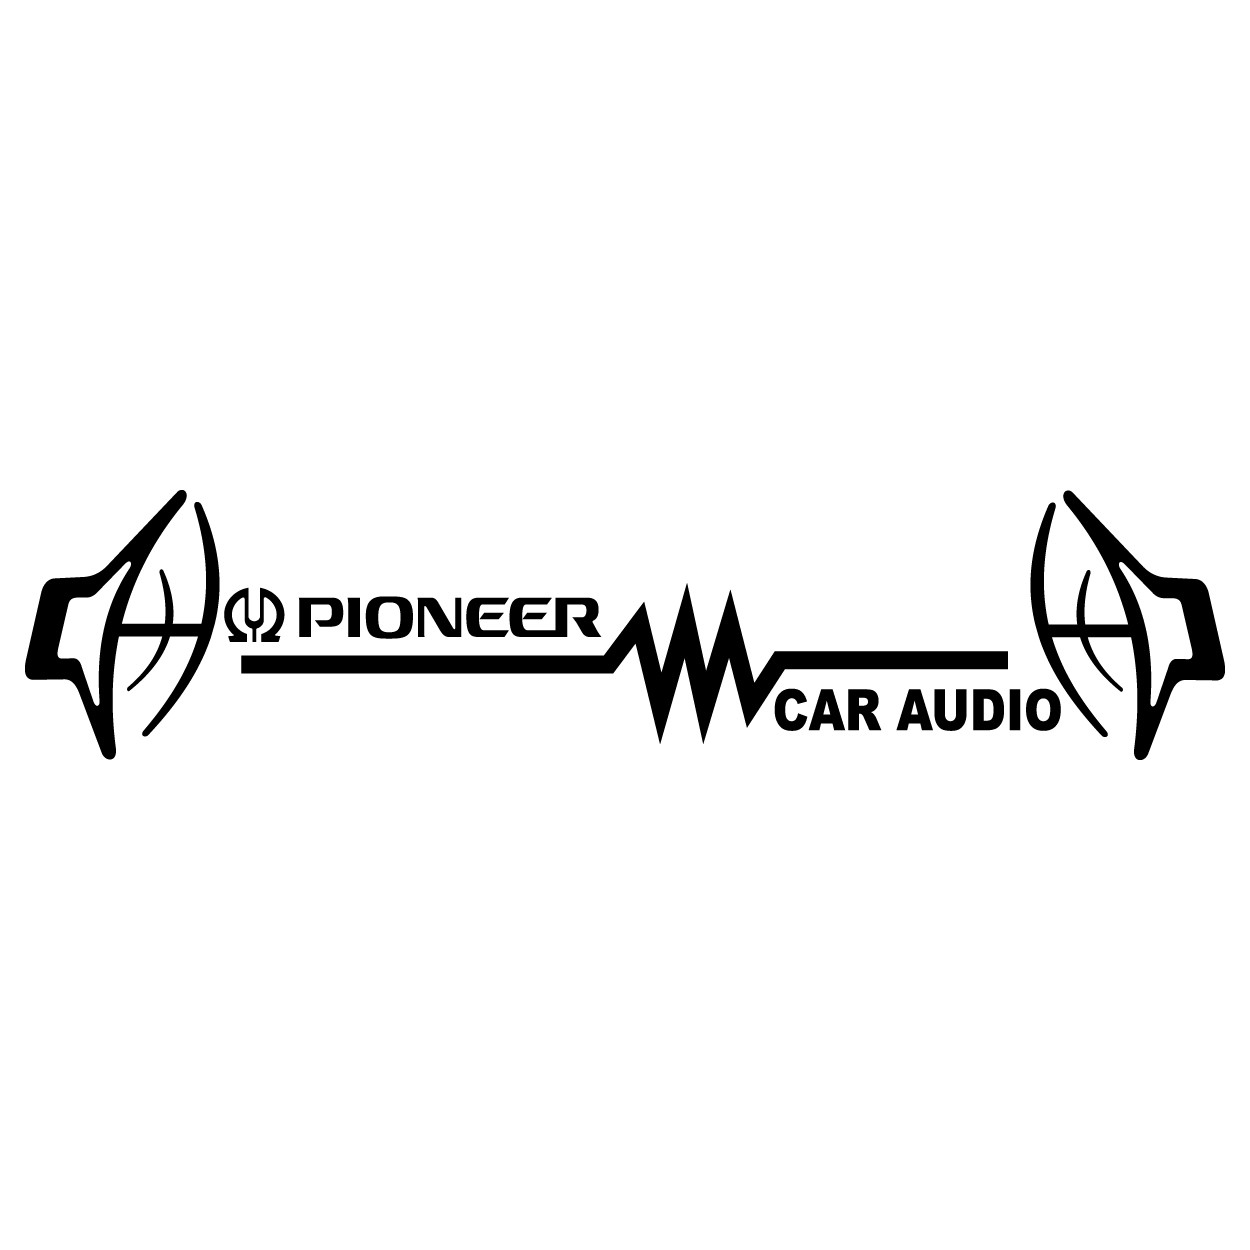 Wc Car Audio